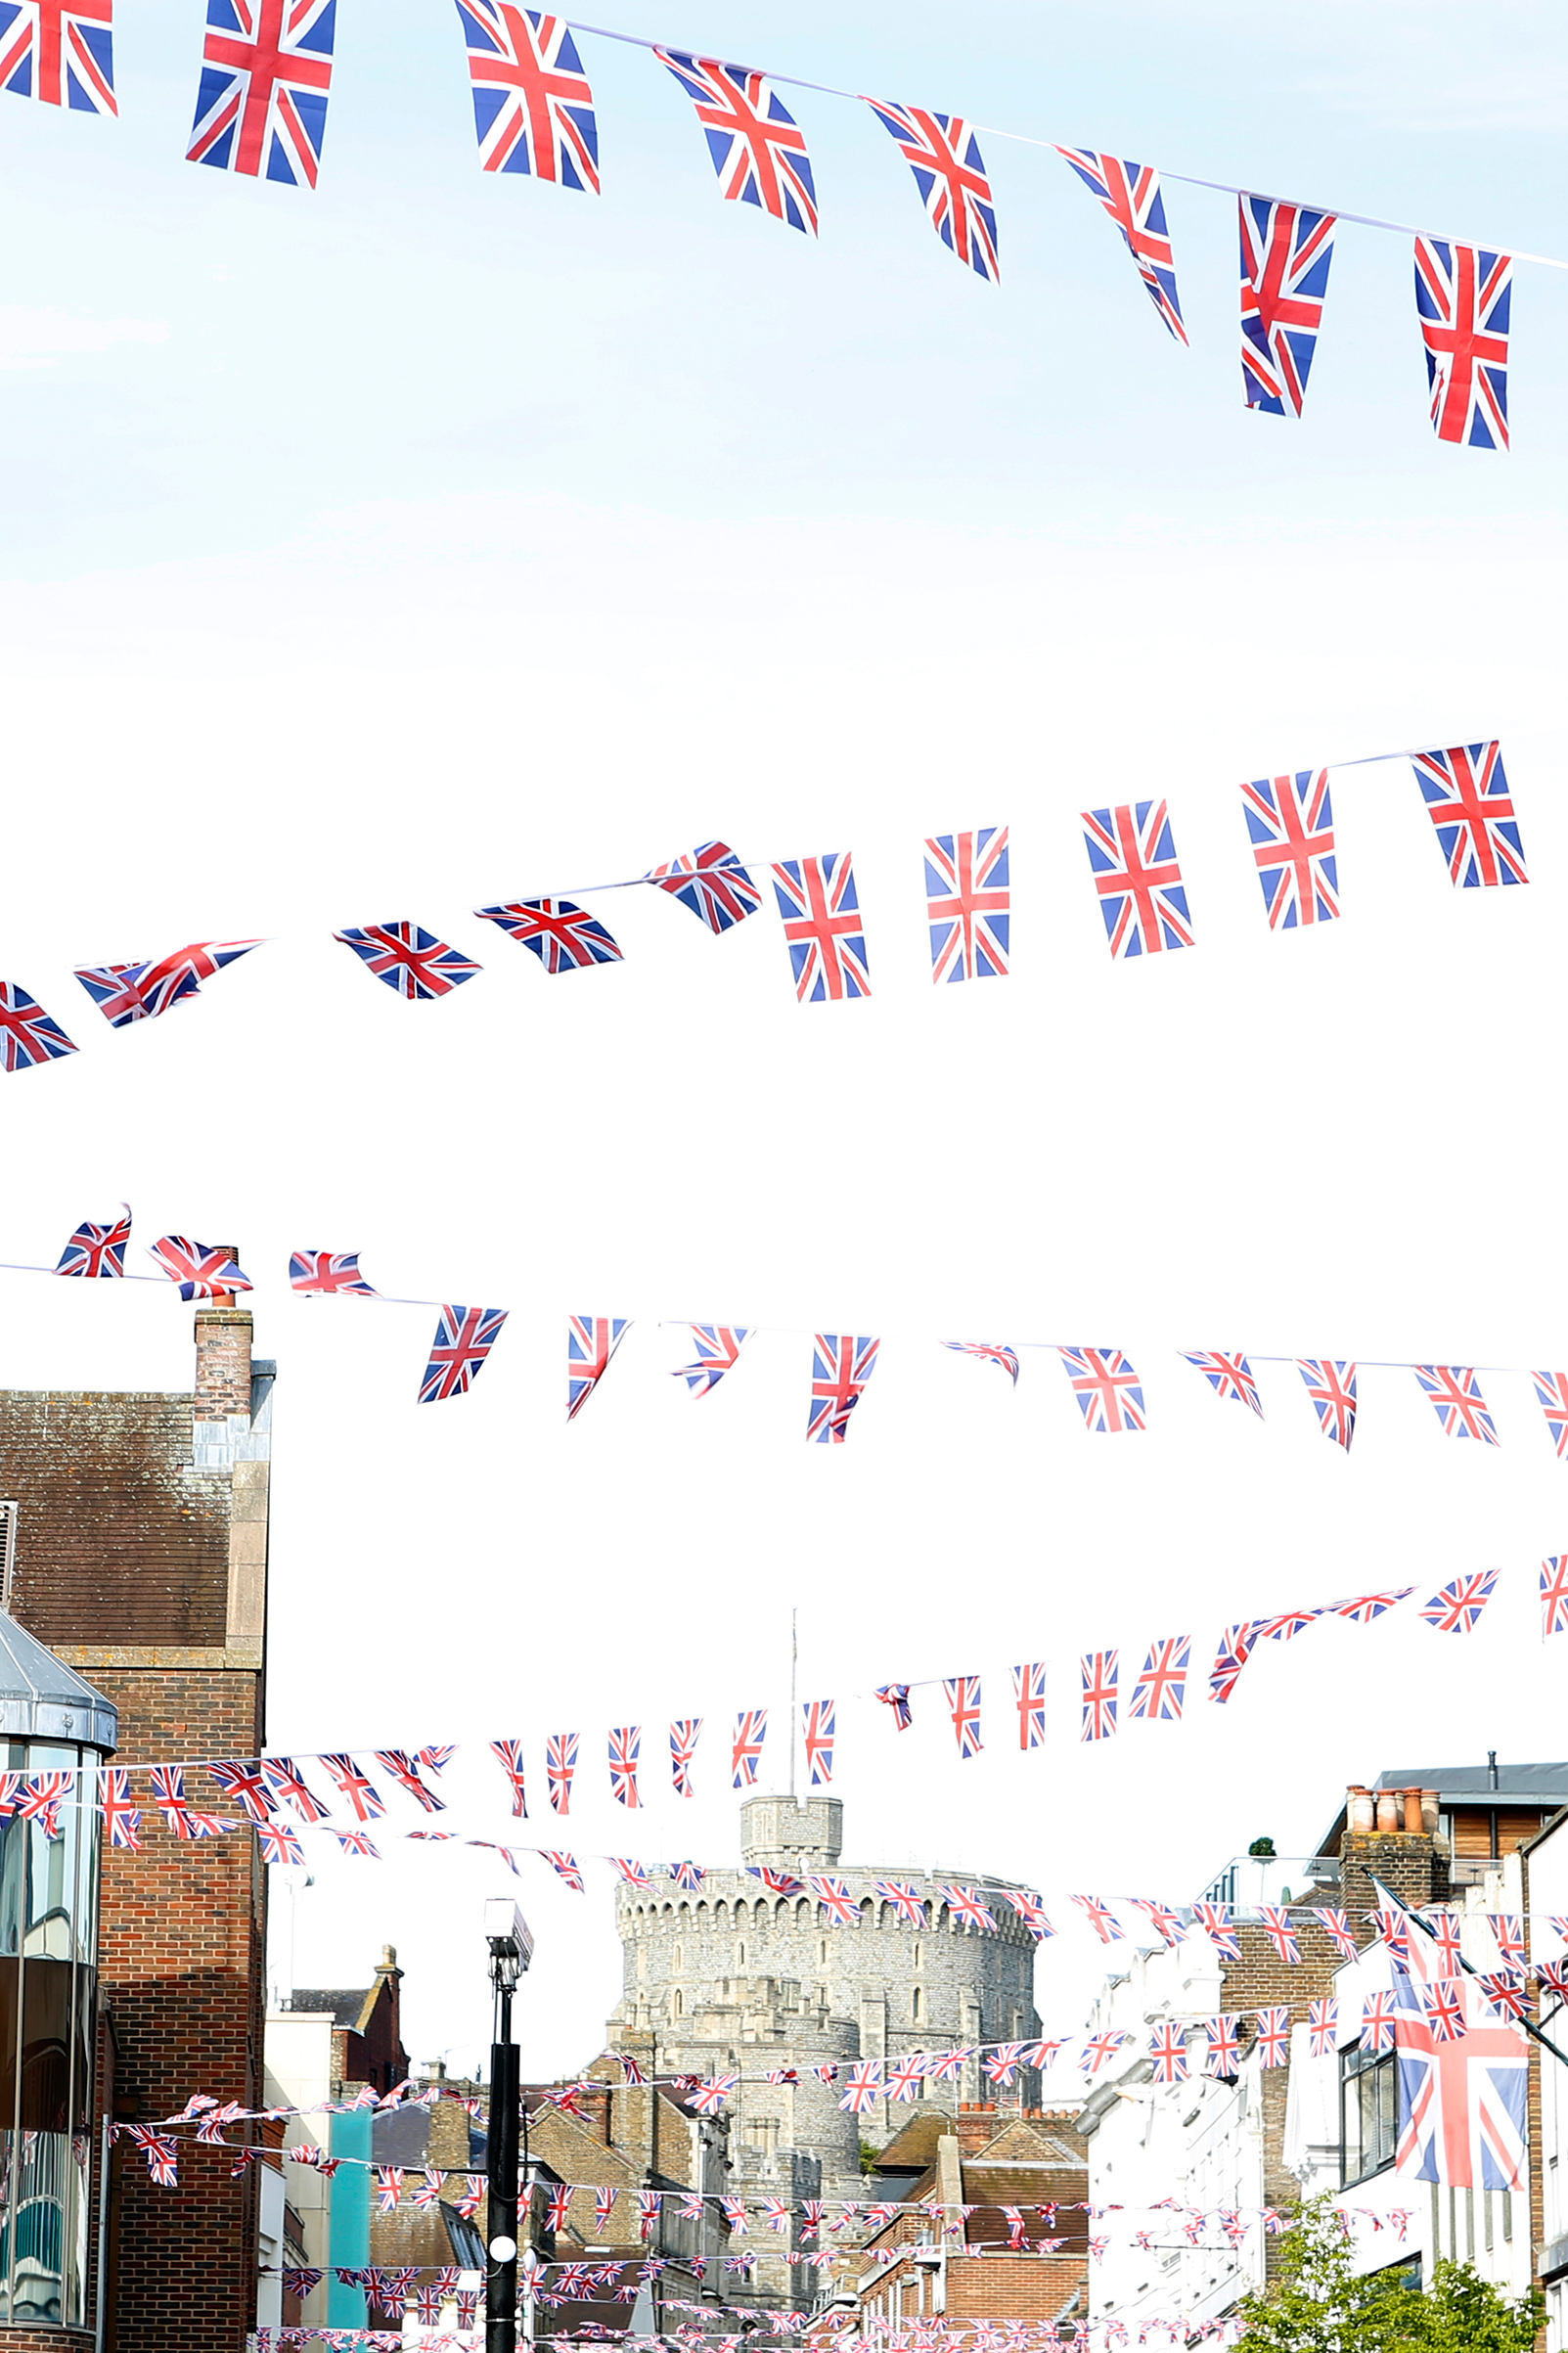 Flags criss-cross a street in Windsor, near the castle where Harry and Meghan wed.